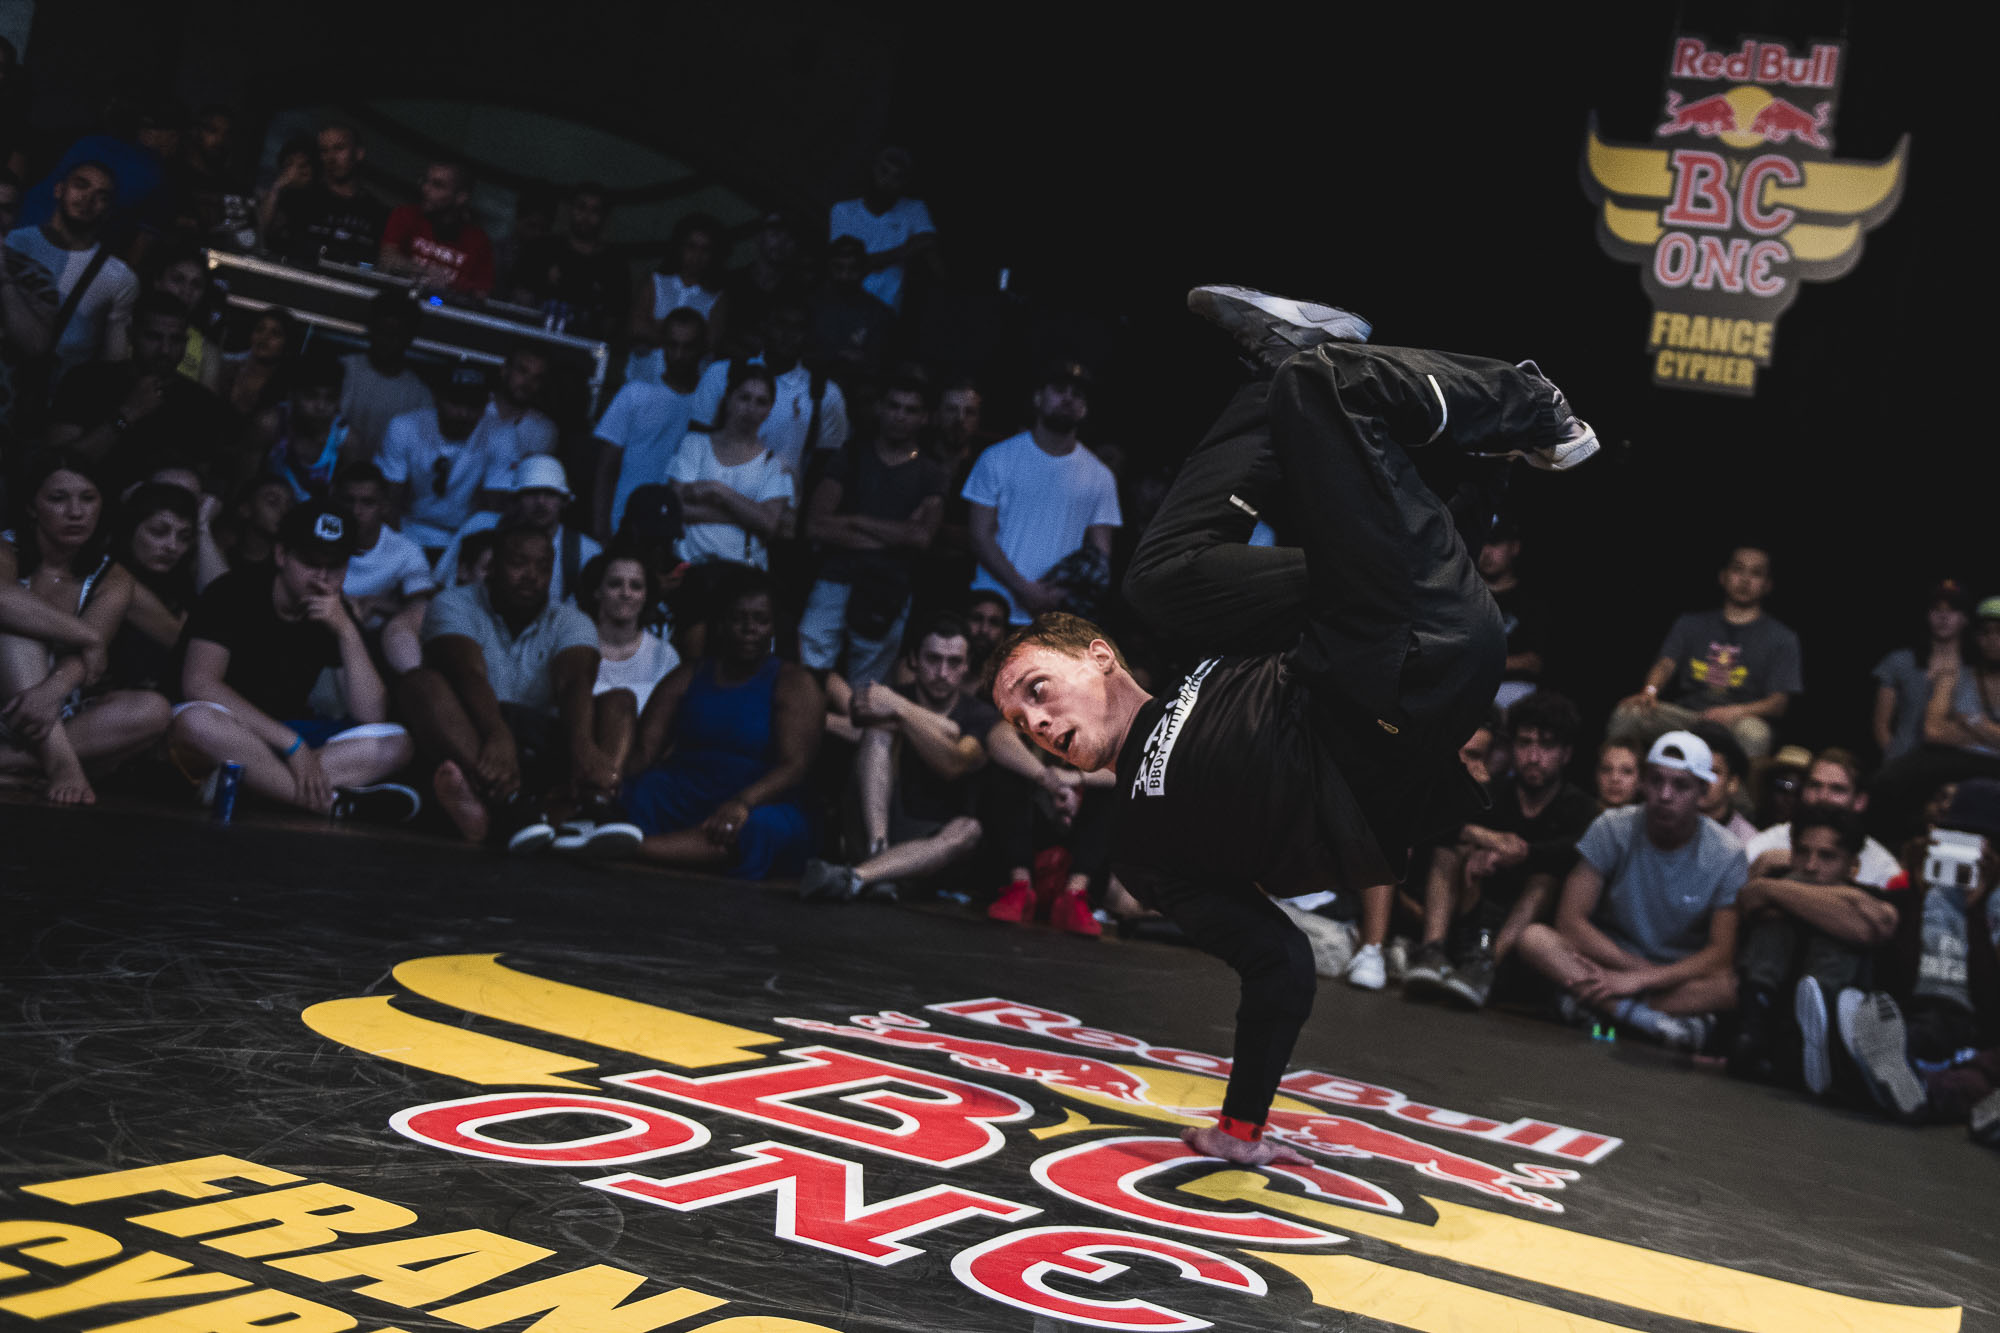 Artson competes at the WIP Villette during the Red Bull BC One France Cypher Final in Paris, France on July 10th 2016.